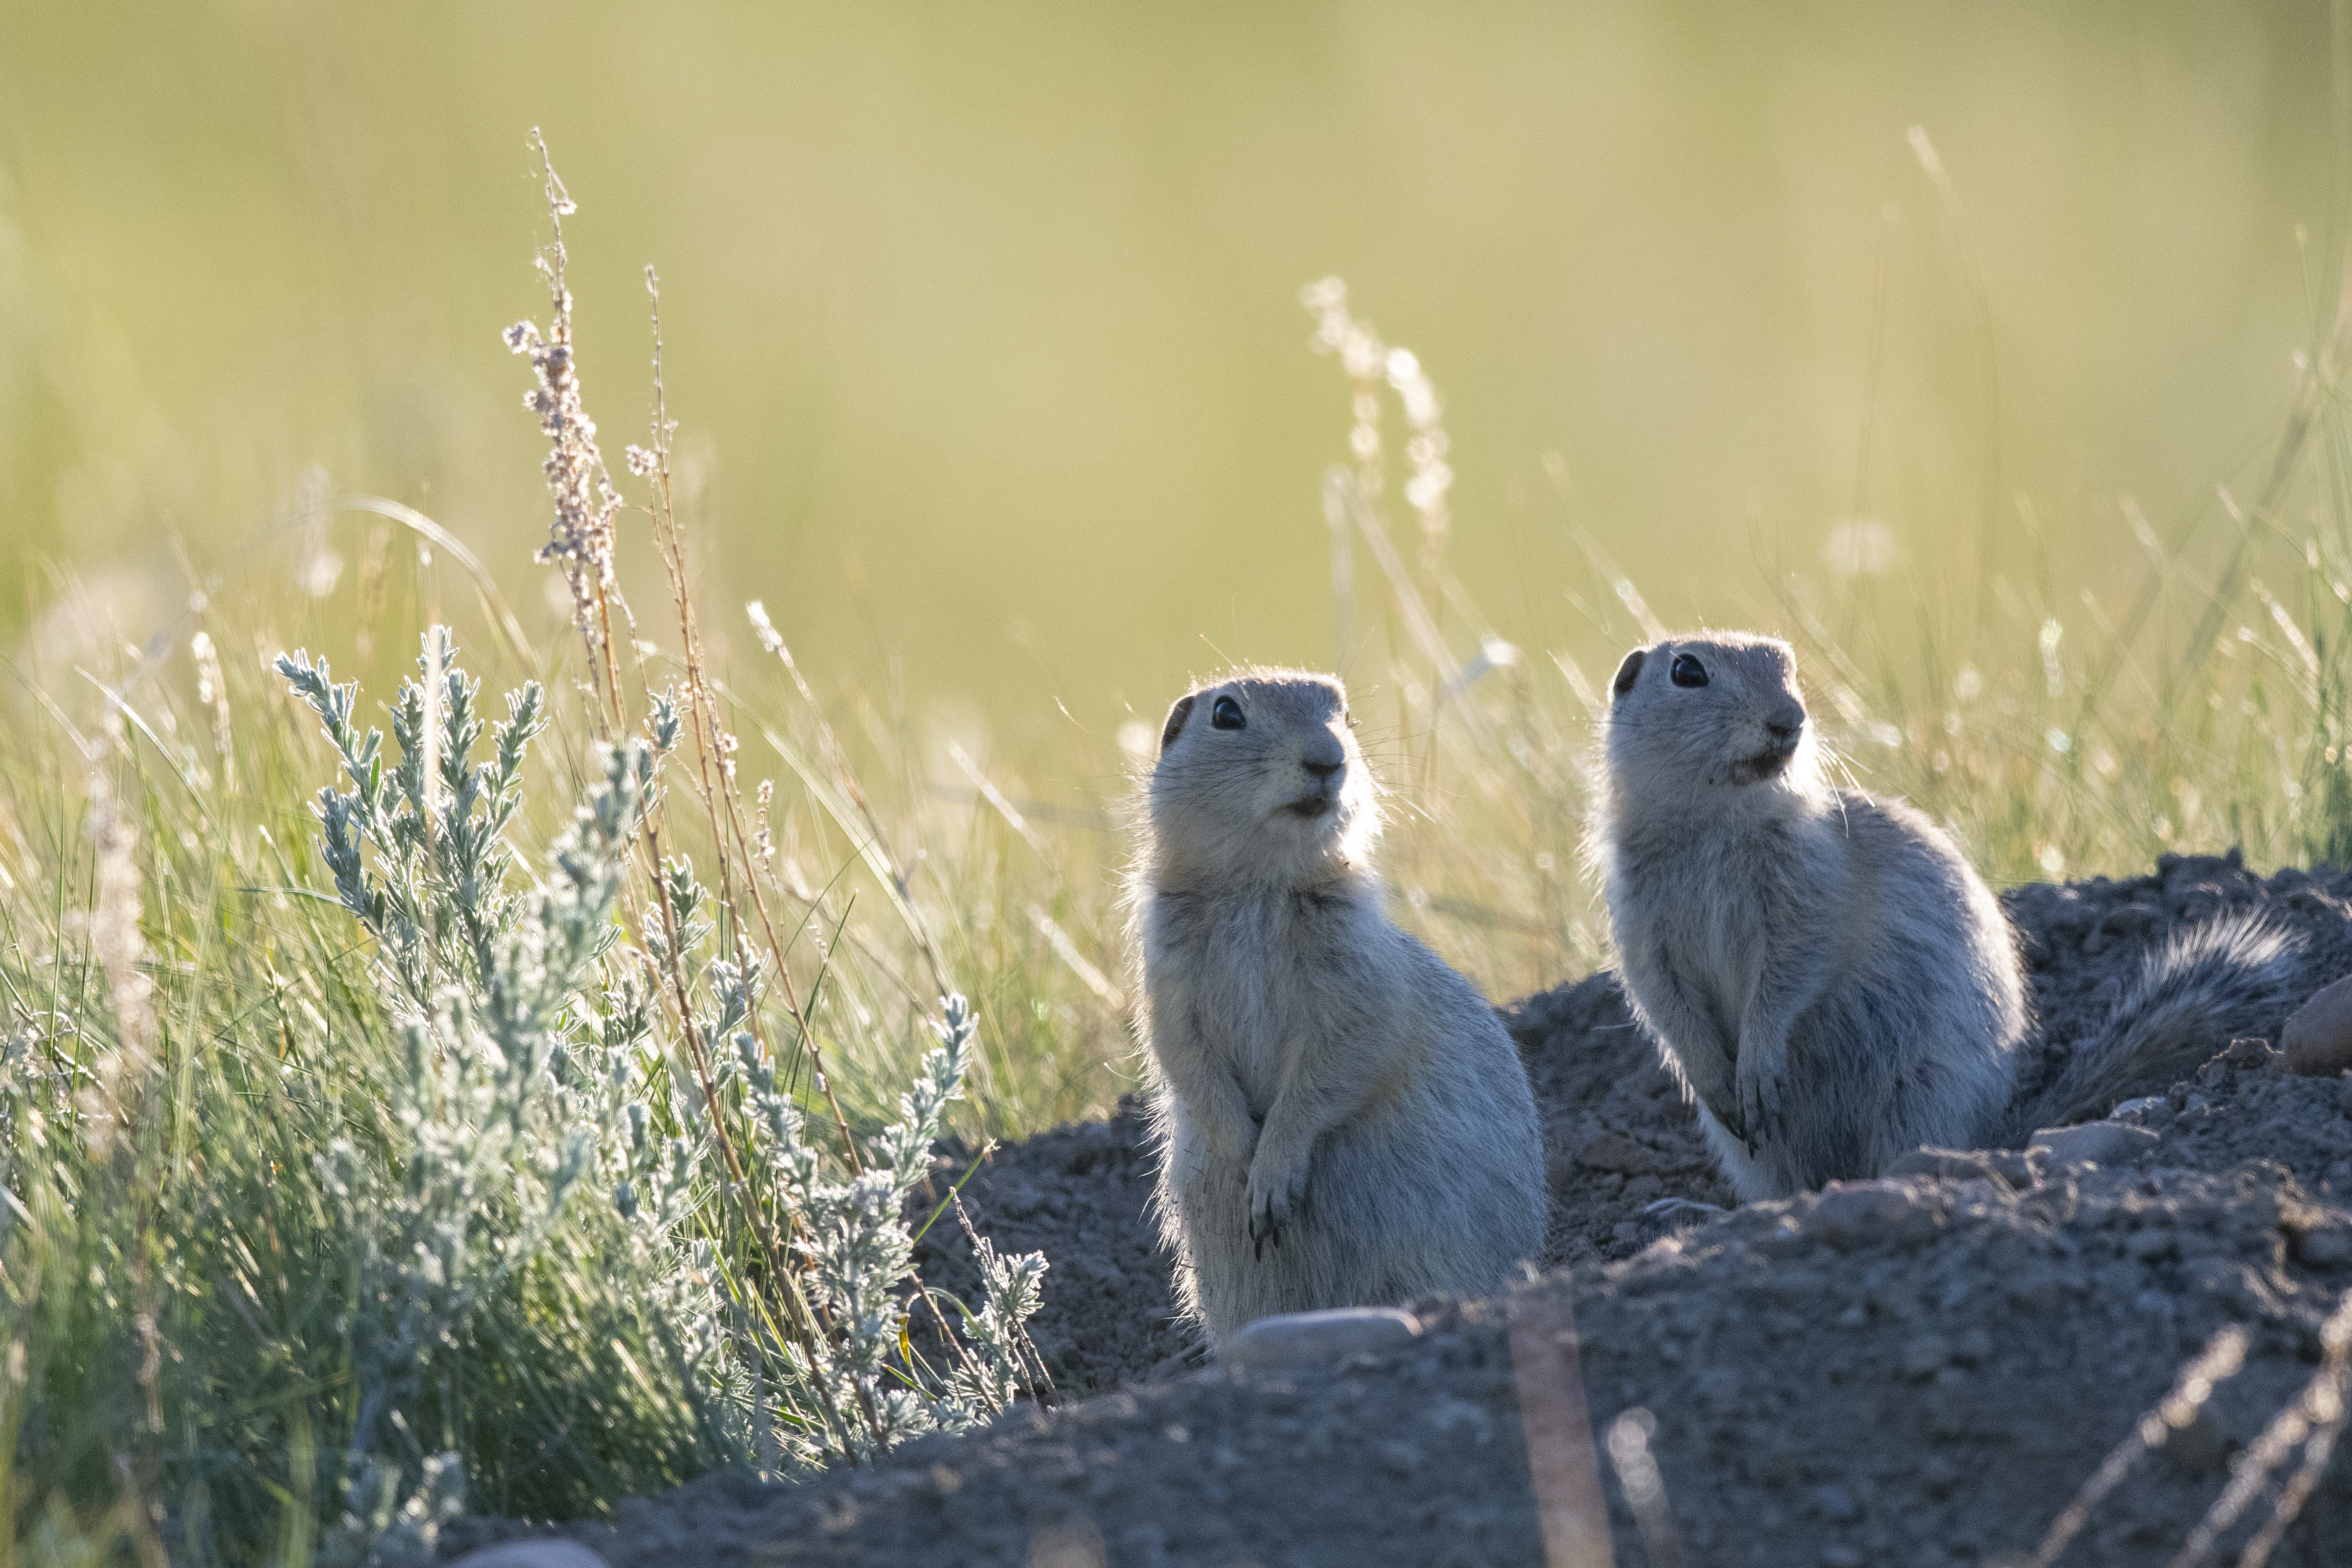 Two ground squirrels stand on a hill of dirt